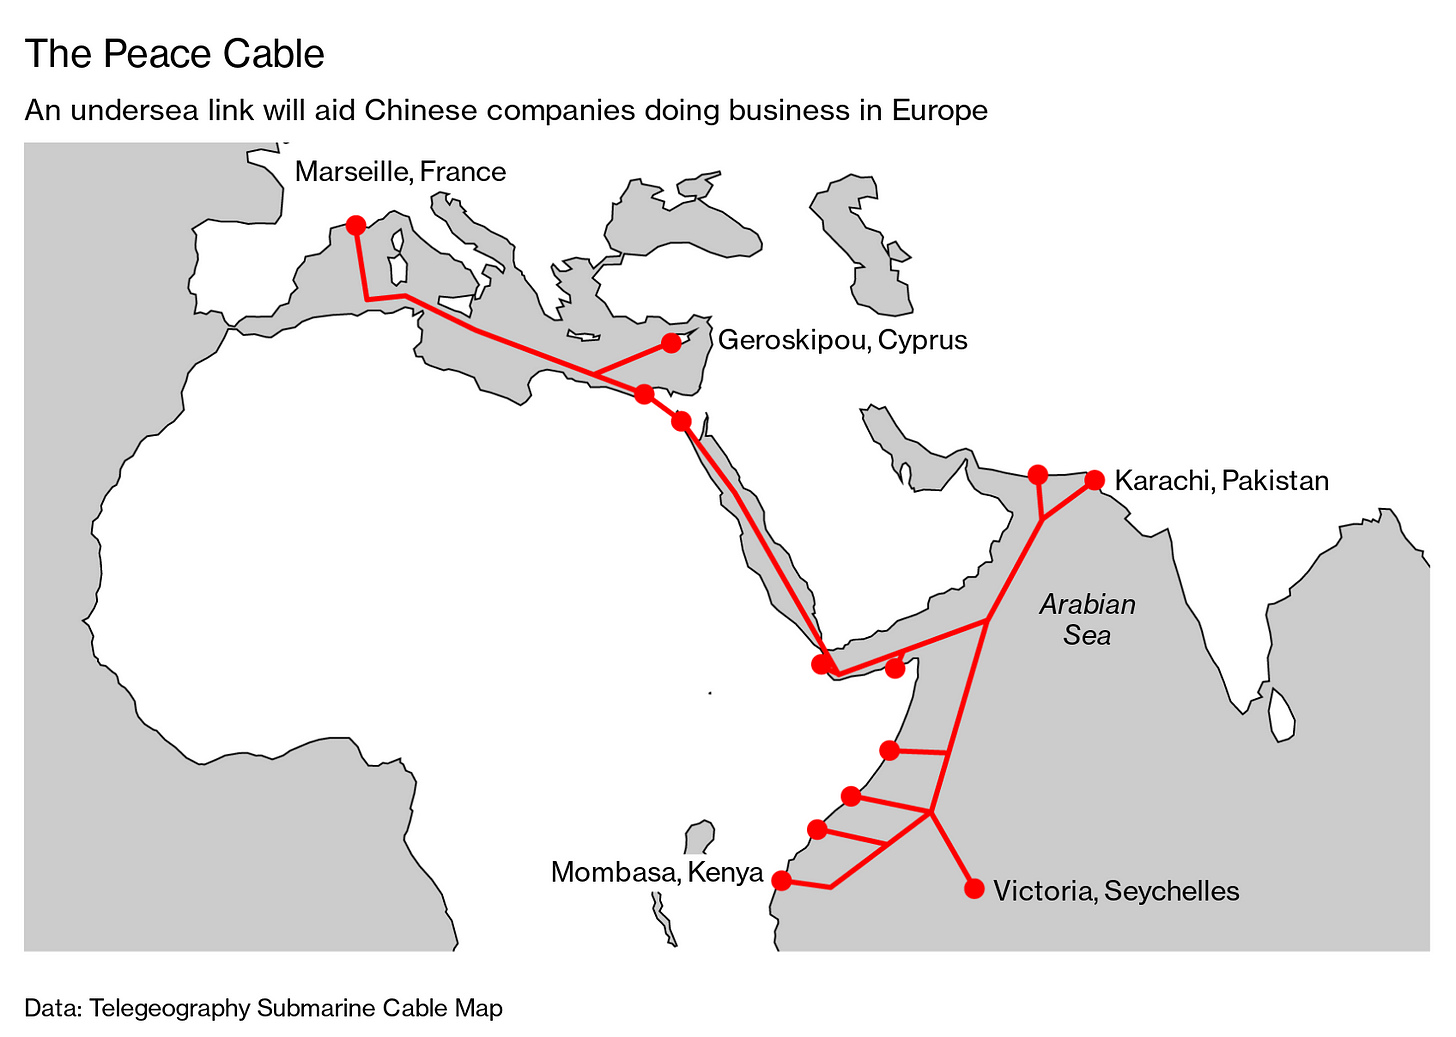 China's 'Peace Cable' in Europe Raises Tensions With the U.S. - Bloomberg